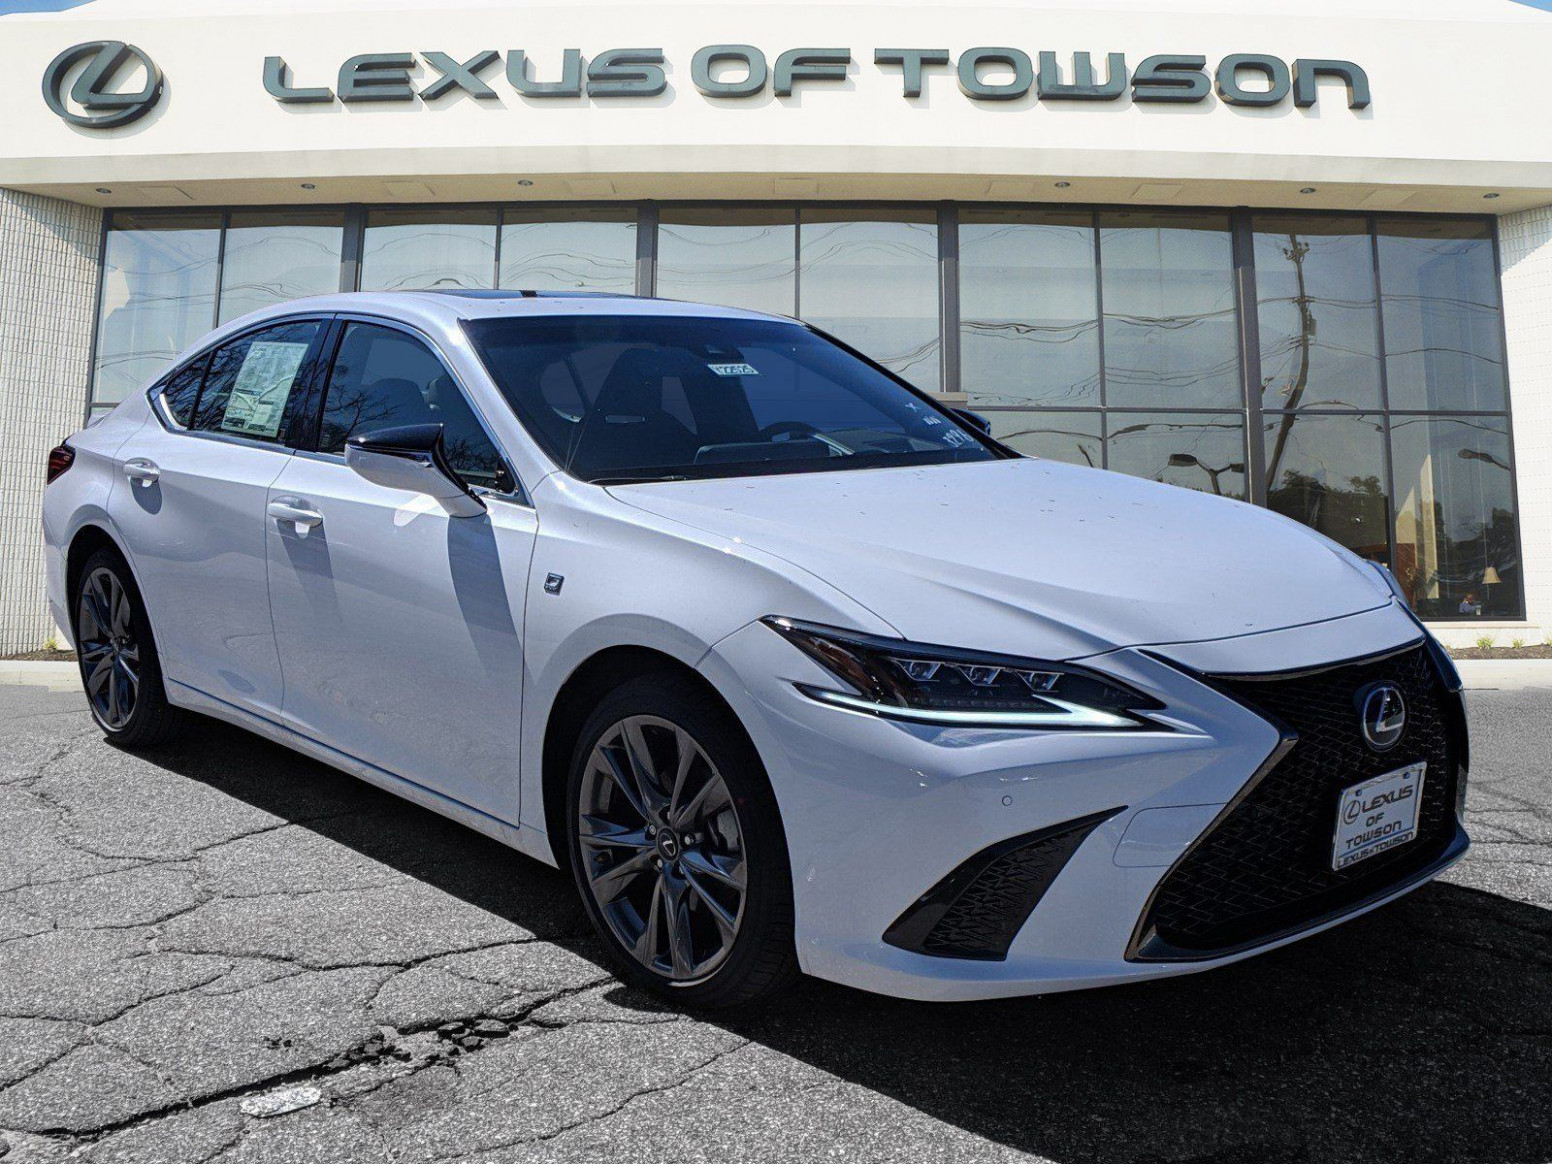 9 Lexus Es Redesign and Concept in 9 | Lexus es, Lexus, Redesign